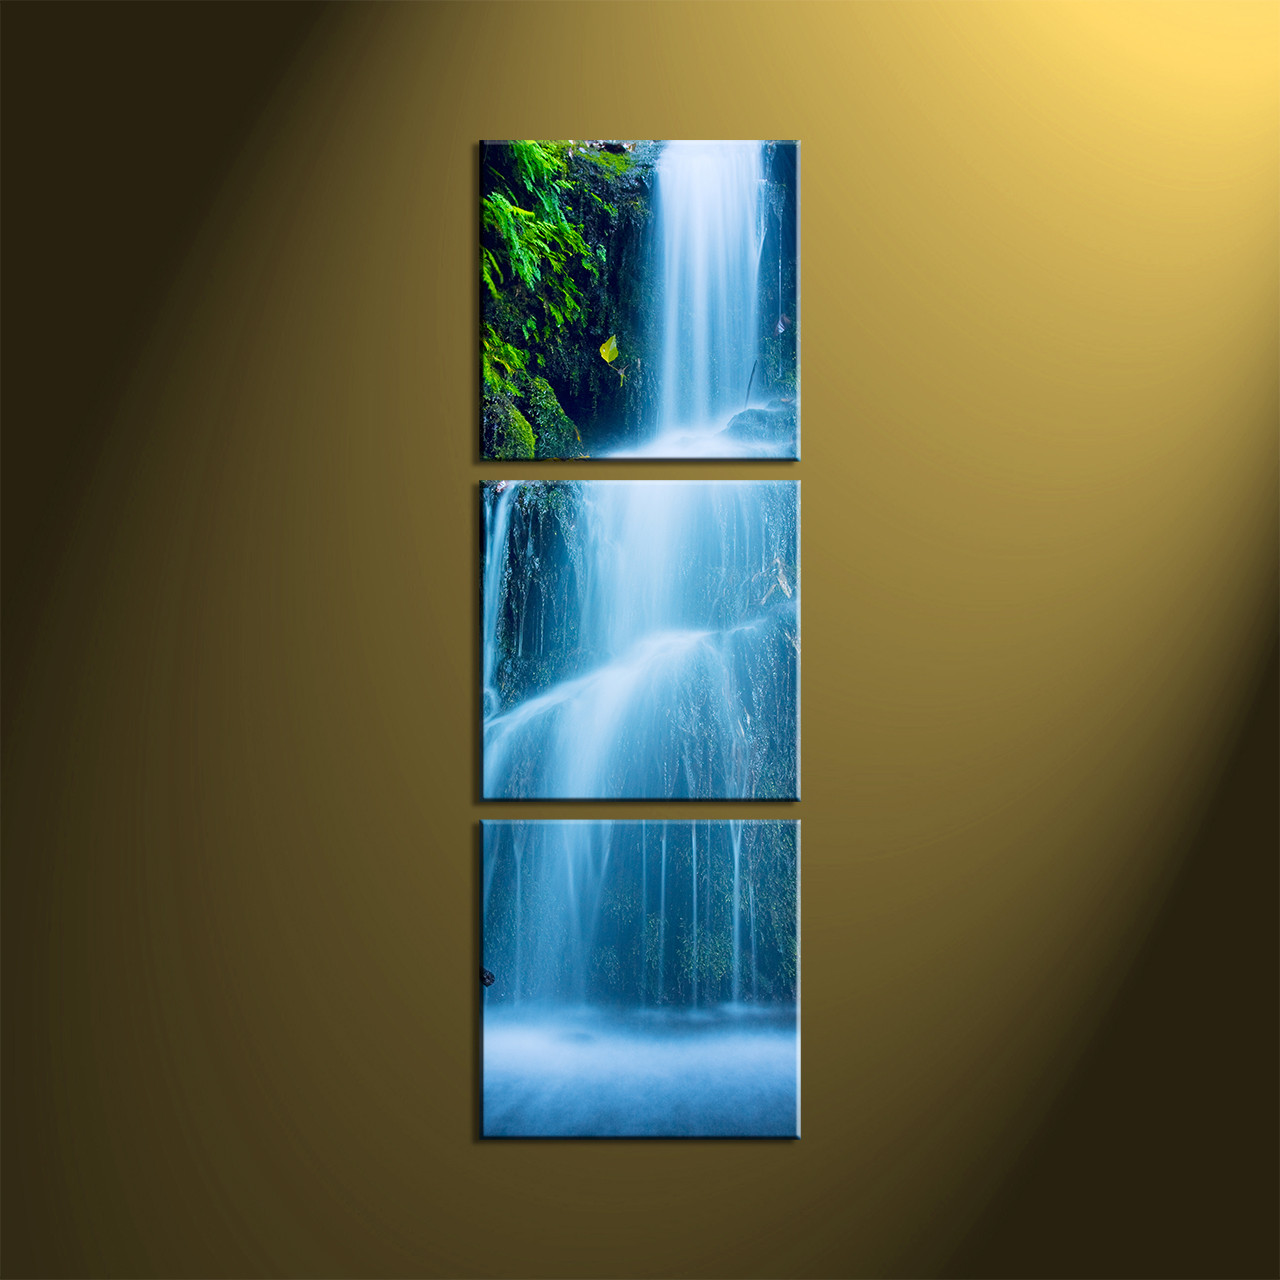 Large Vertical Paintings 3 Piece Green Scenery Nature Waterfall Art